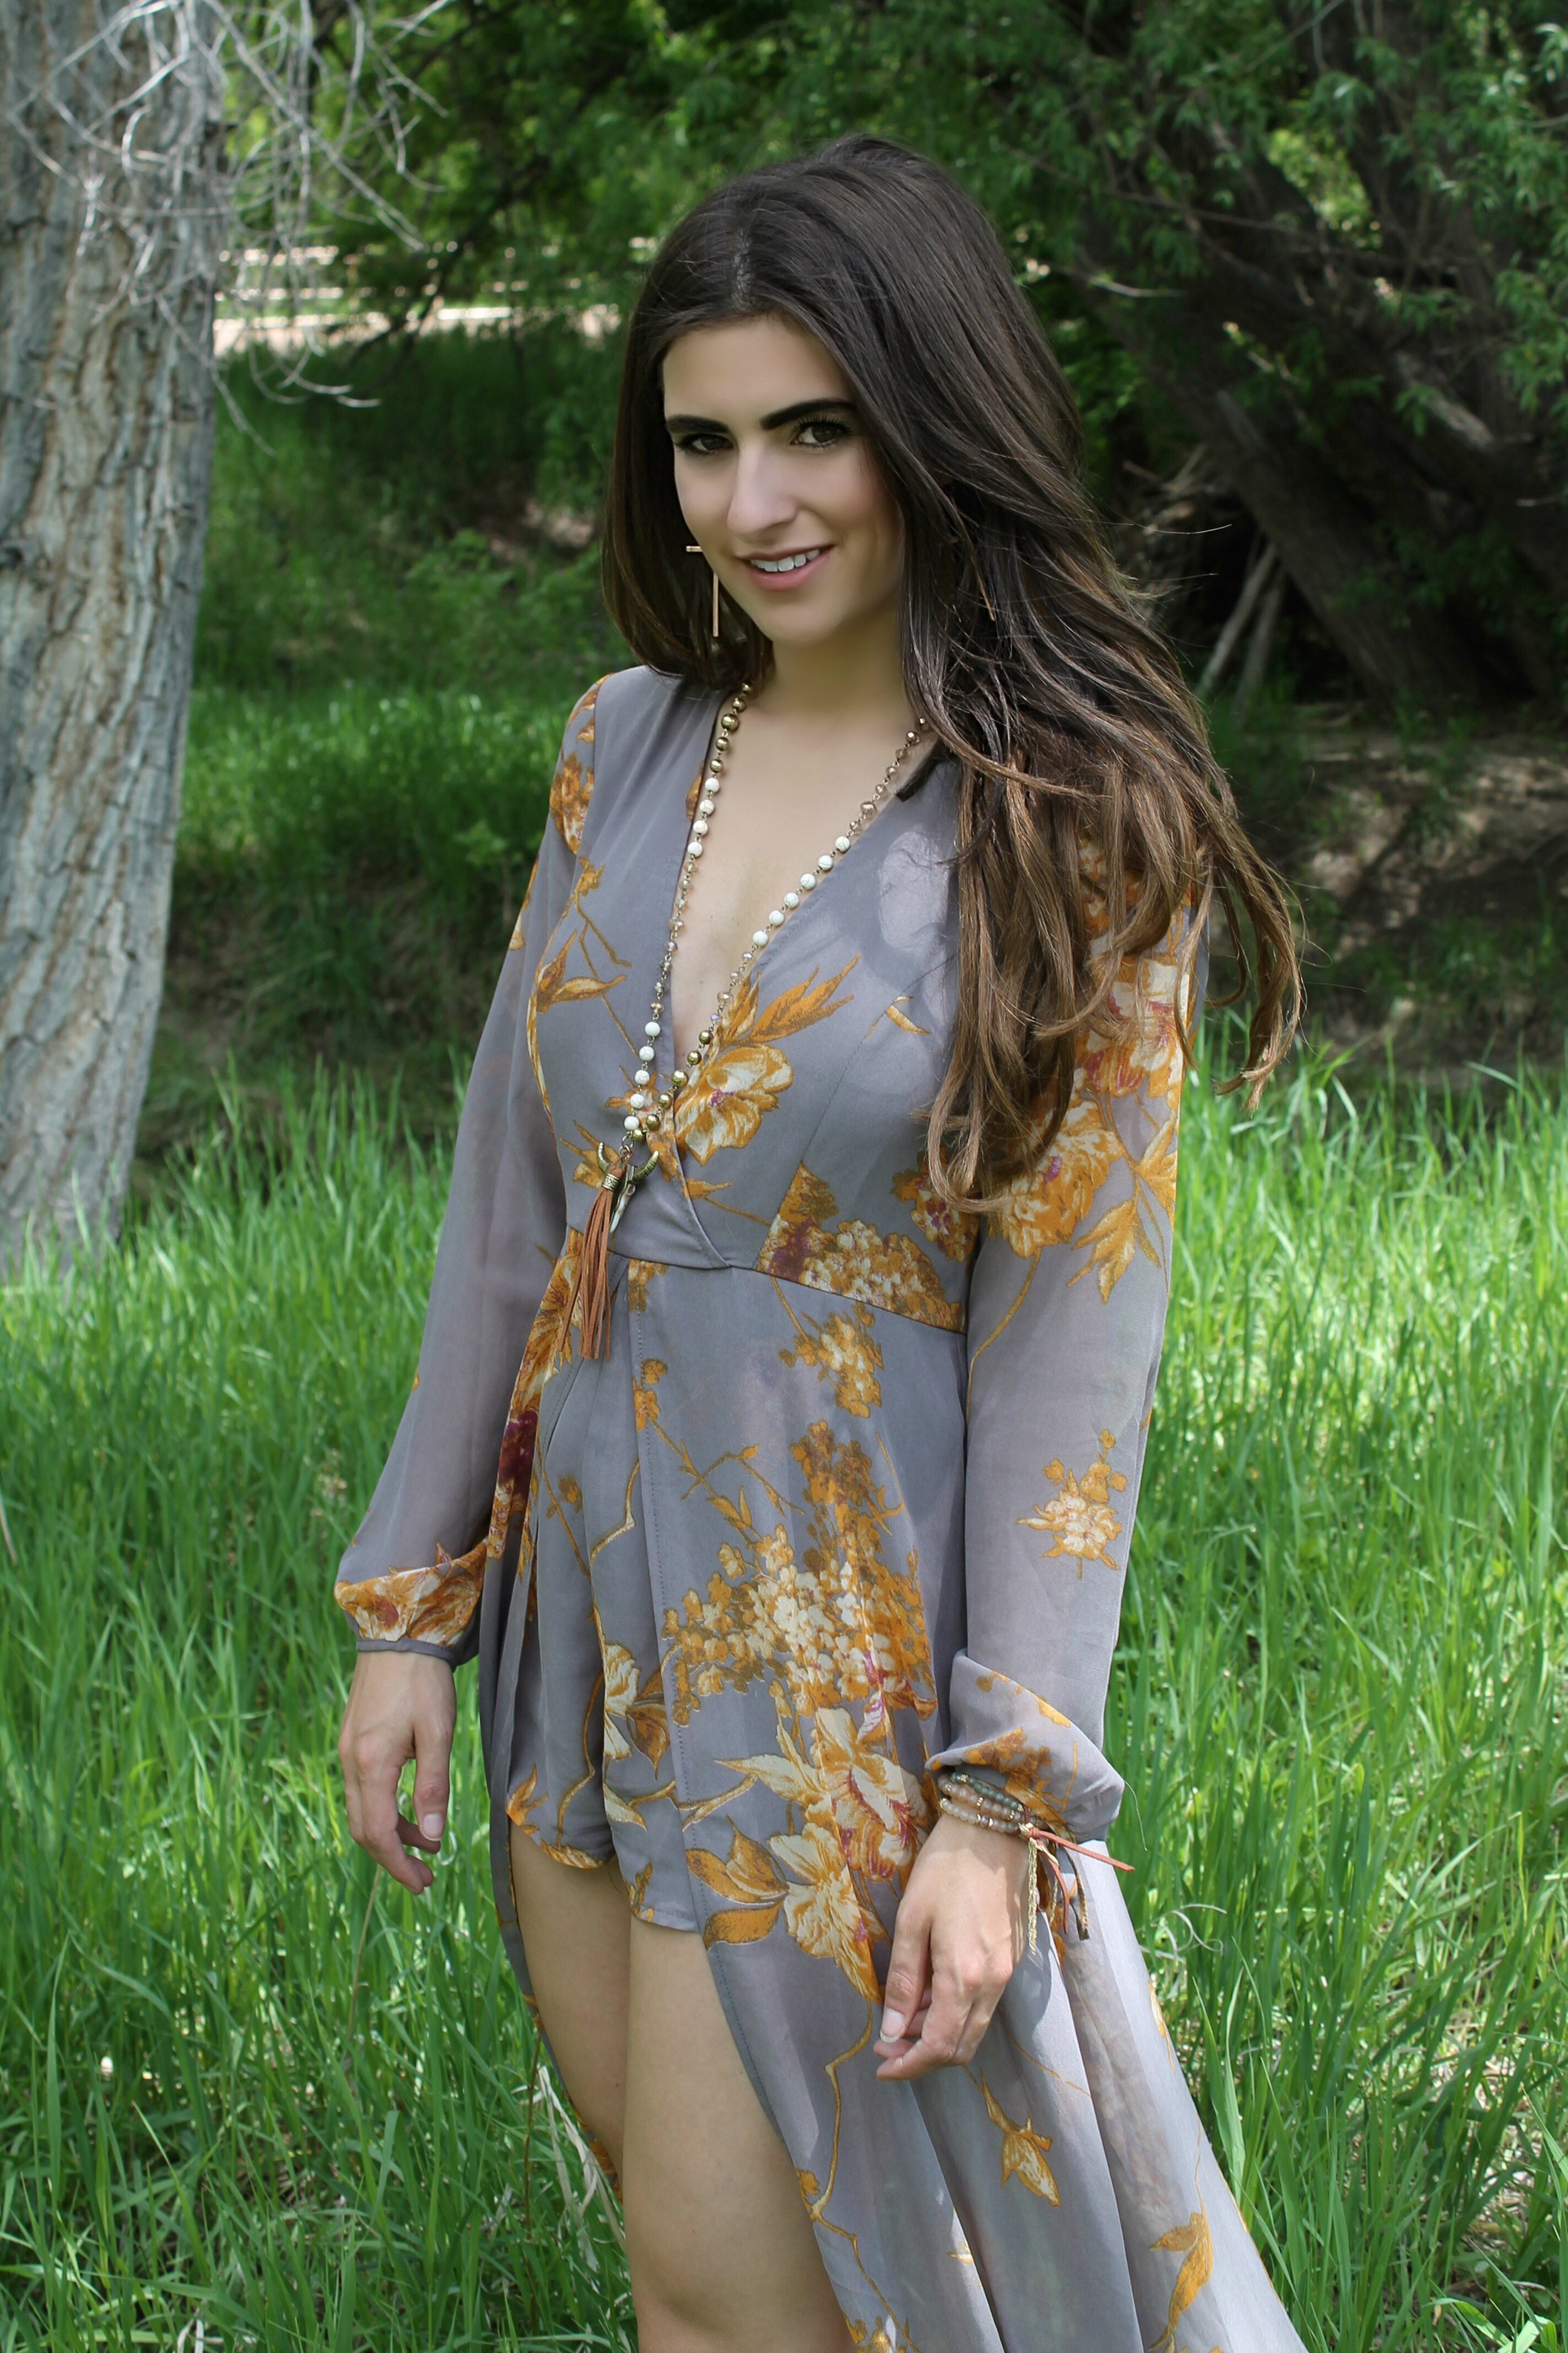 Fine and Dandelion Grey Floral Print Romper from Lulu's